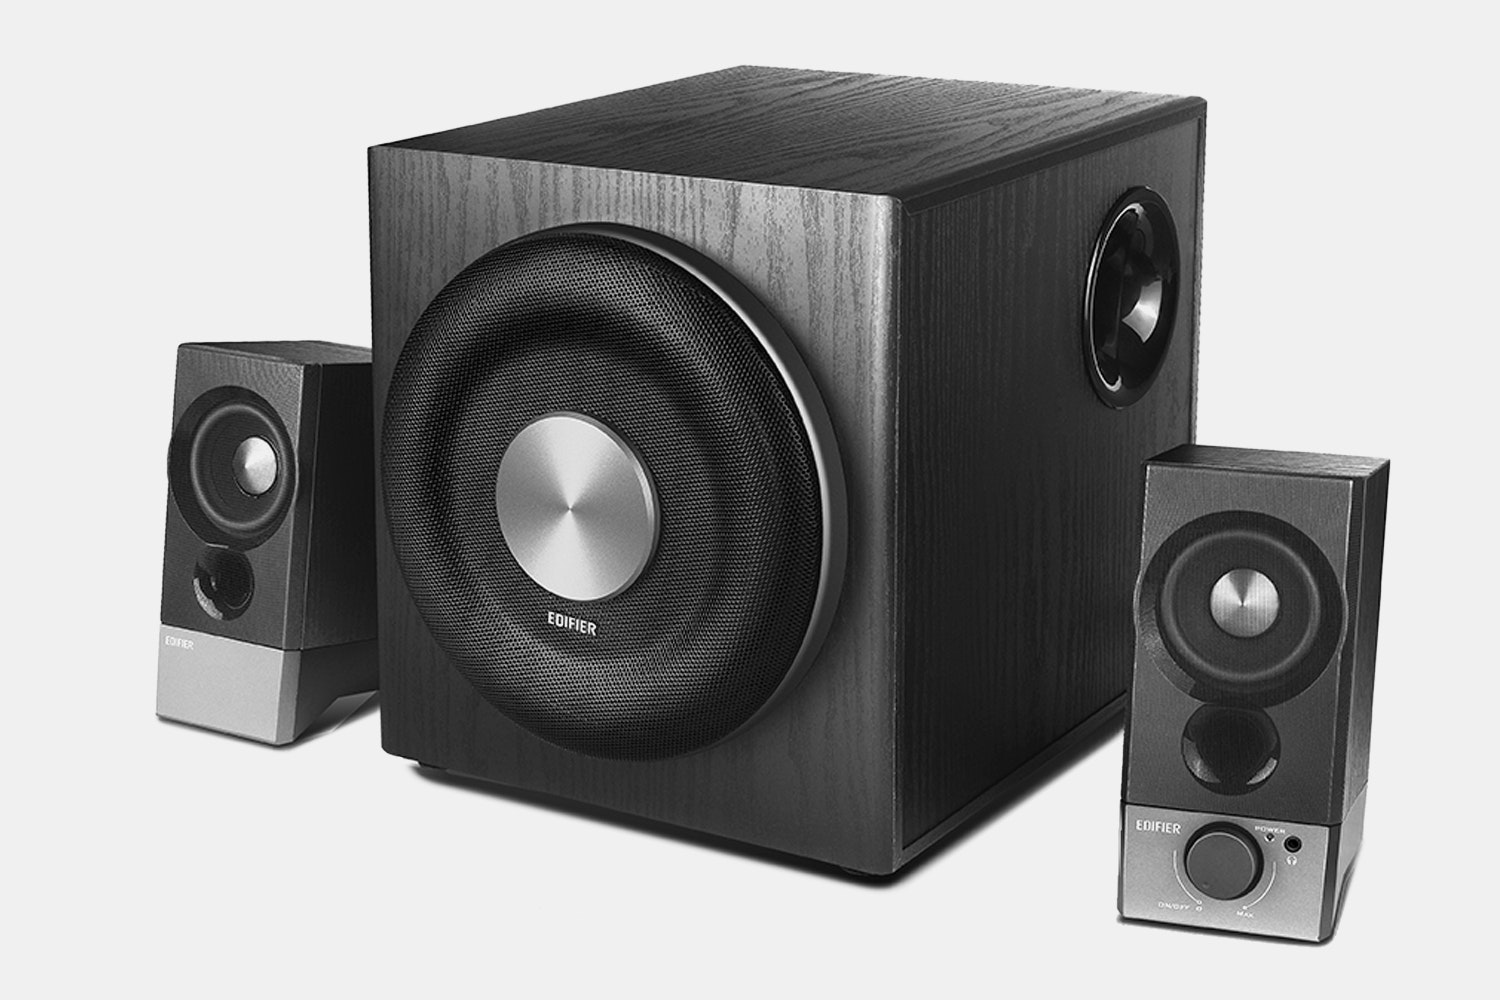 Edifier M3600D Home/Gaming Surround Sound System